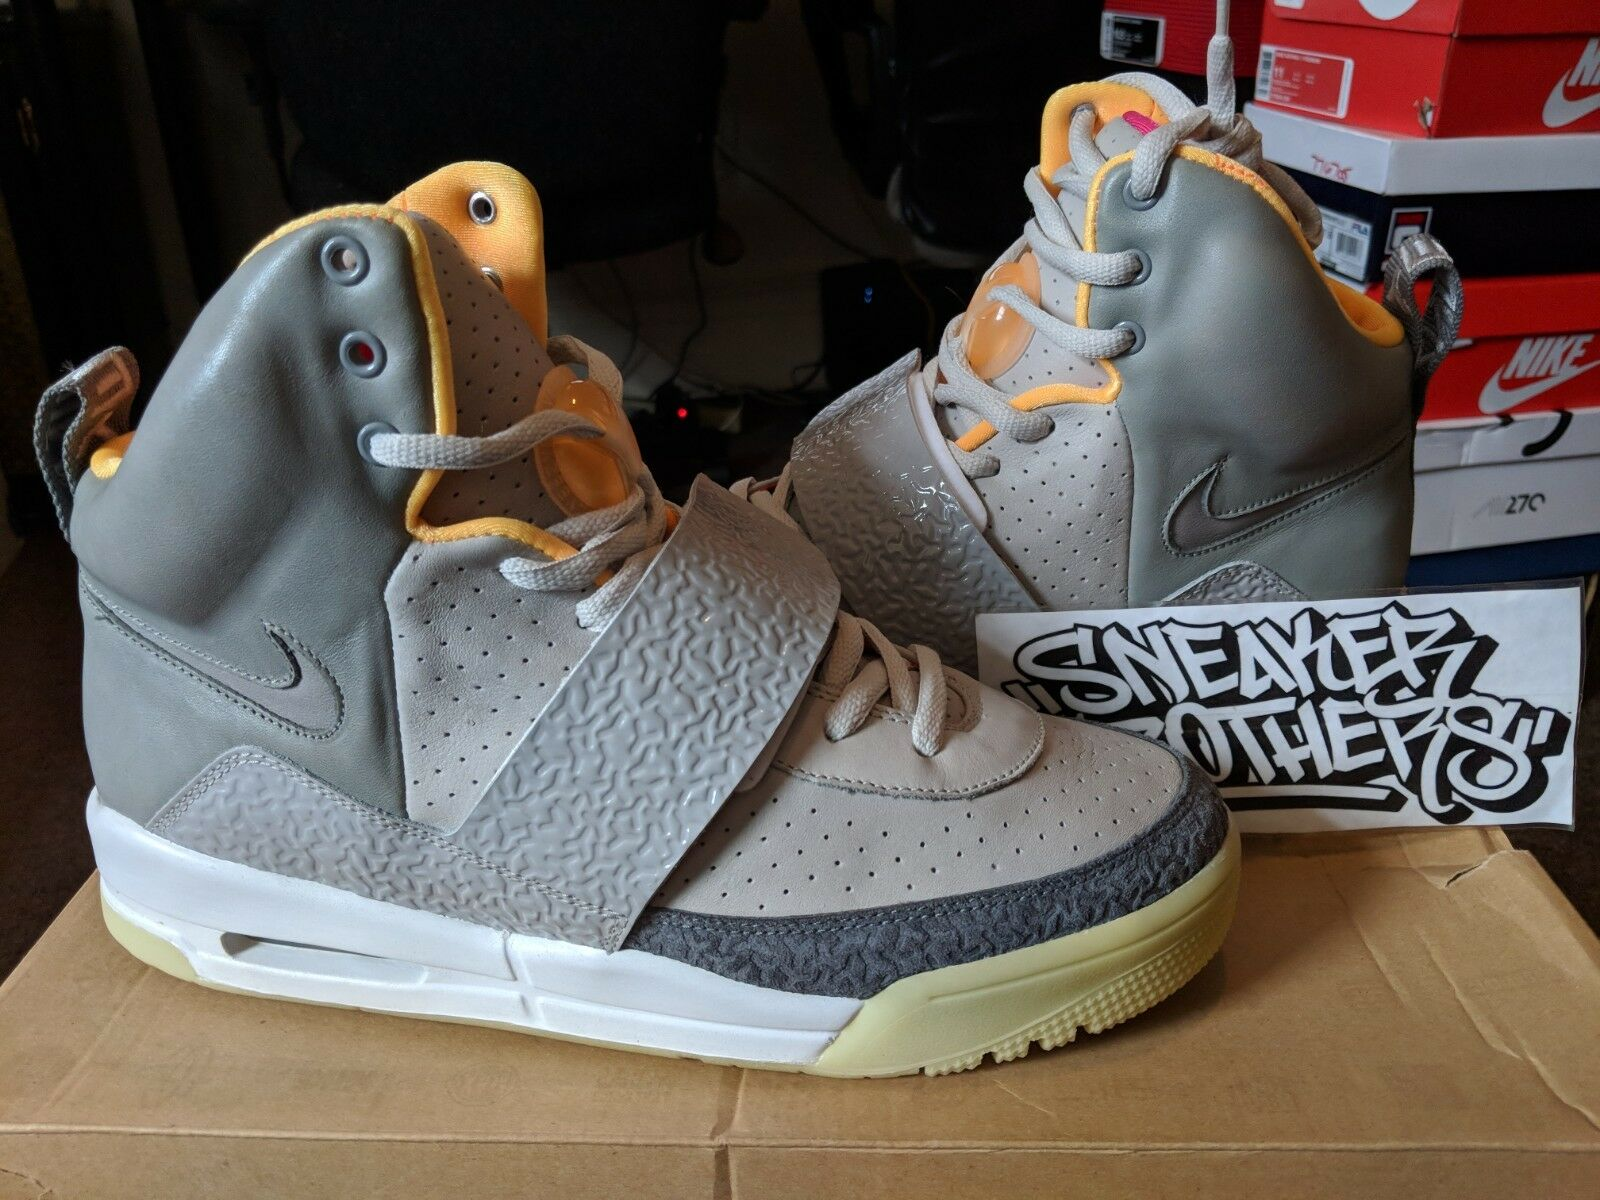 Nike Air Yeezy Zen Grey Light Charcoal Kanye West White Authentic 366164-002